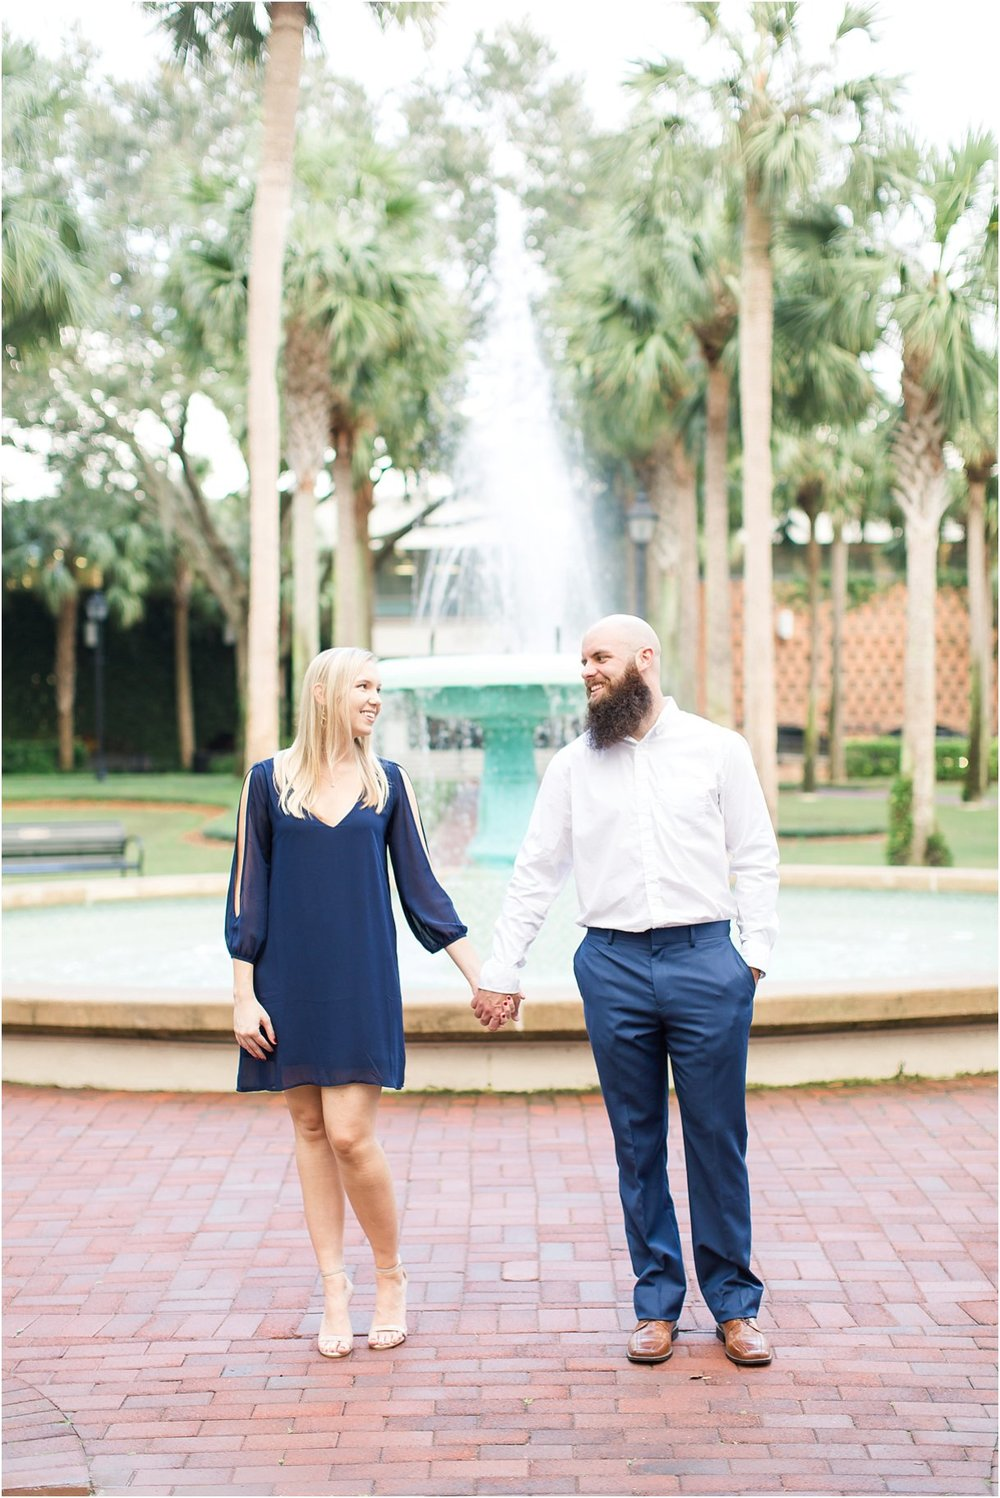 Stetson Florida Engagement Session Tampa St Augustine DeLand11.jpg